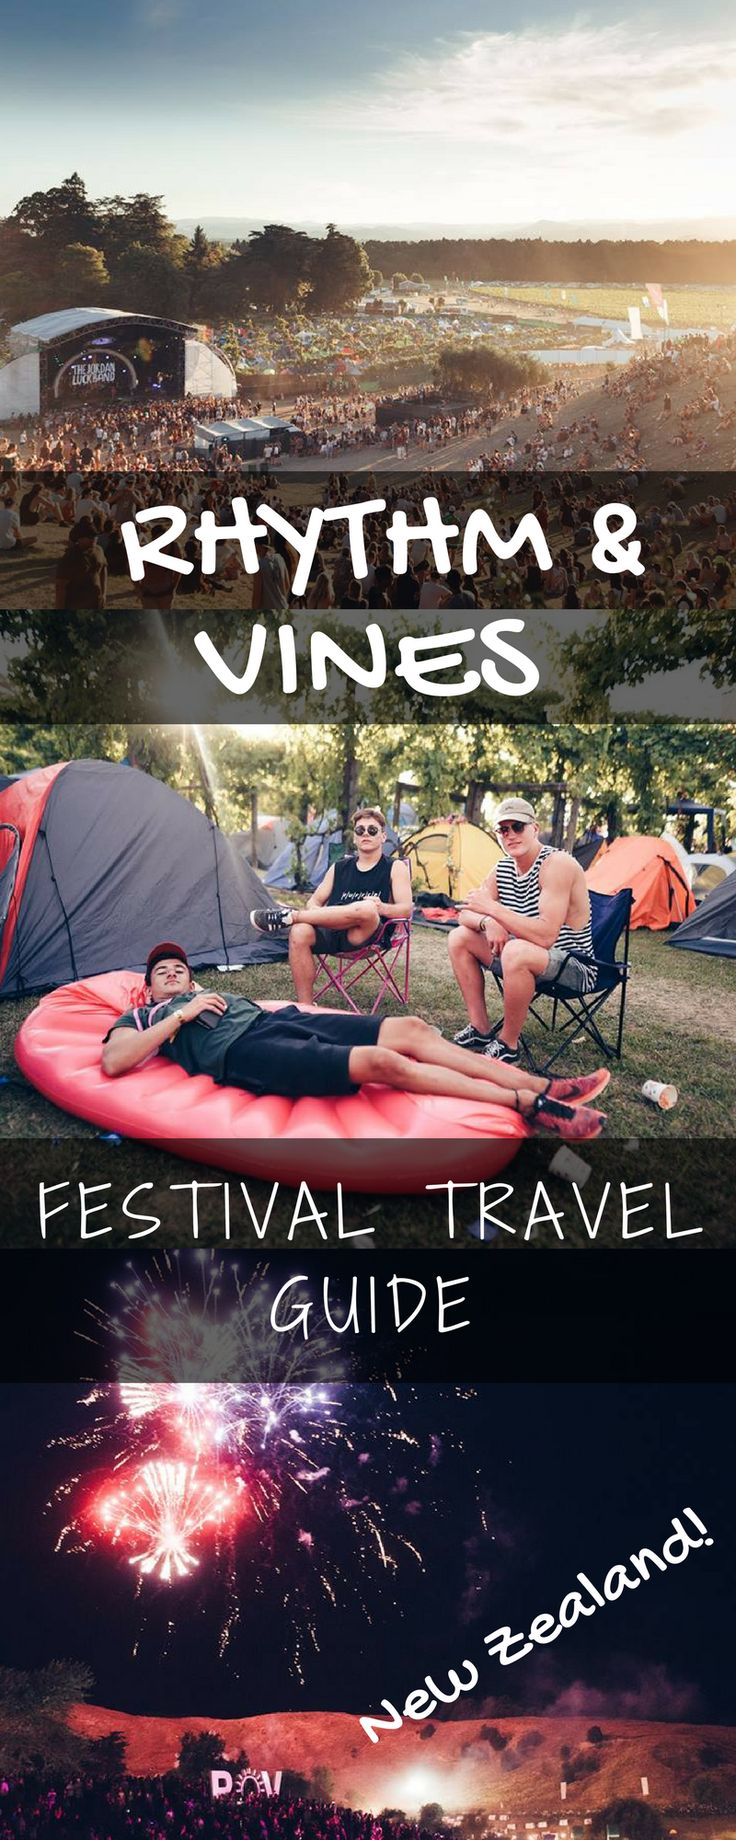 Rhythm & Vines: A festival in New Zealand in a vineyard. Learn about the festival, travel, and more.